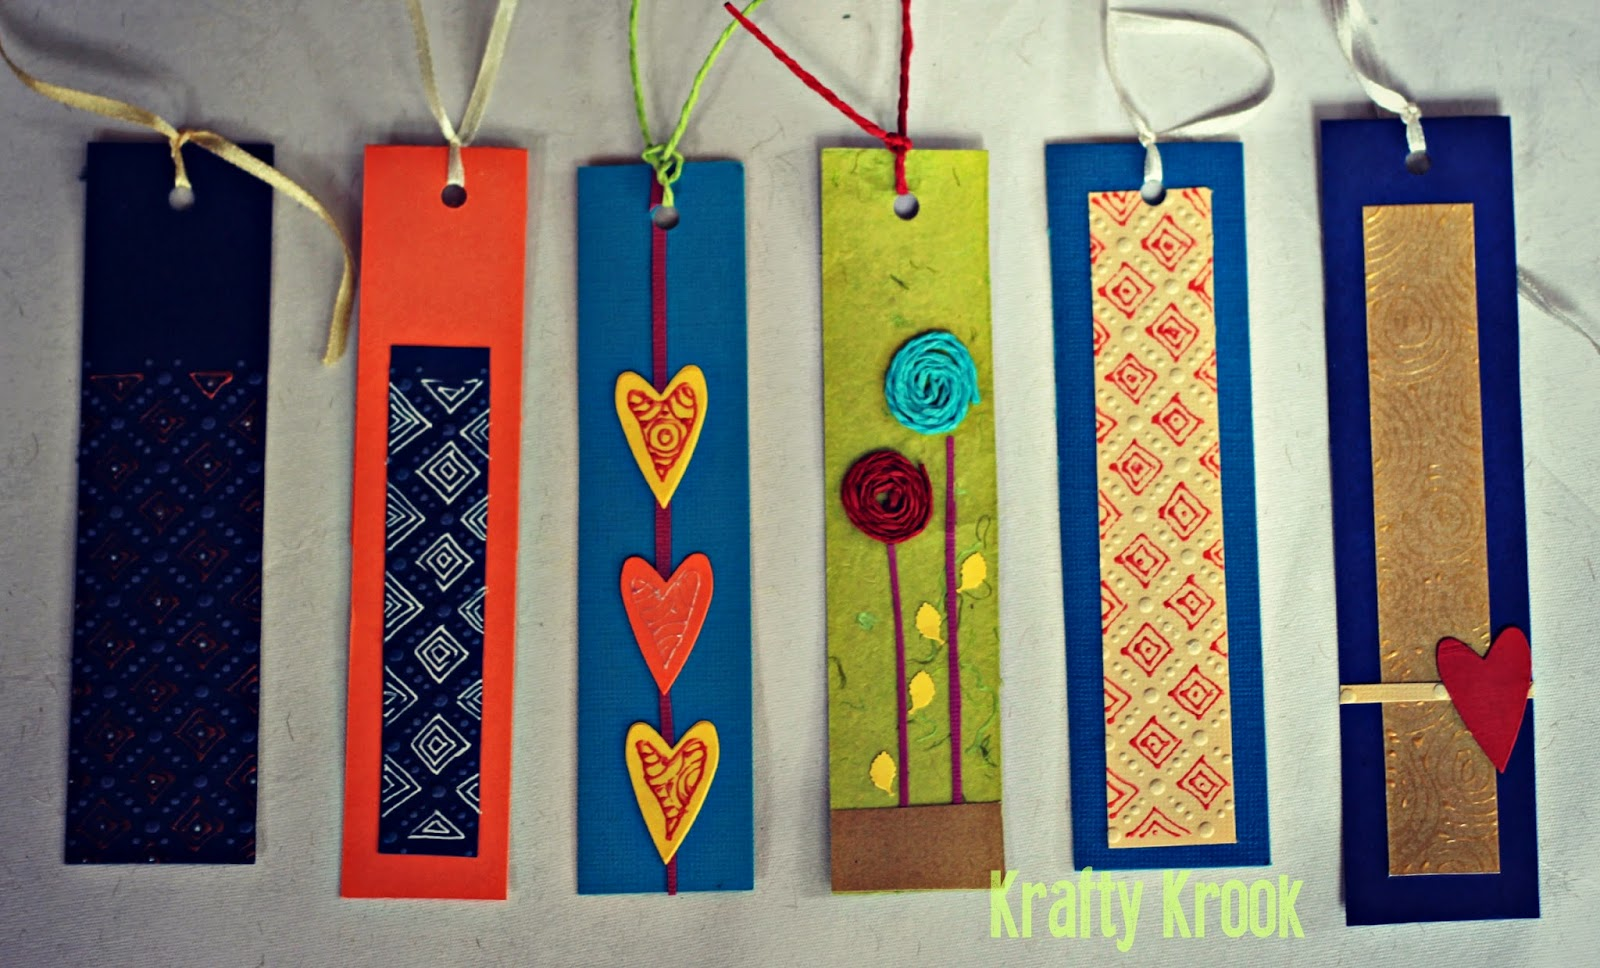 Krafty krook bookworms for bookworms handmade bookmarks amp clips